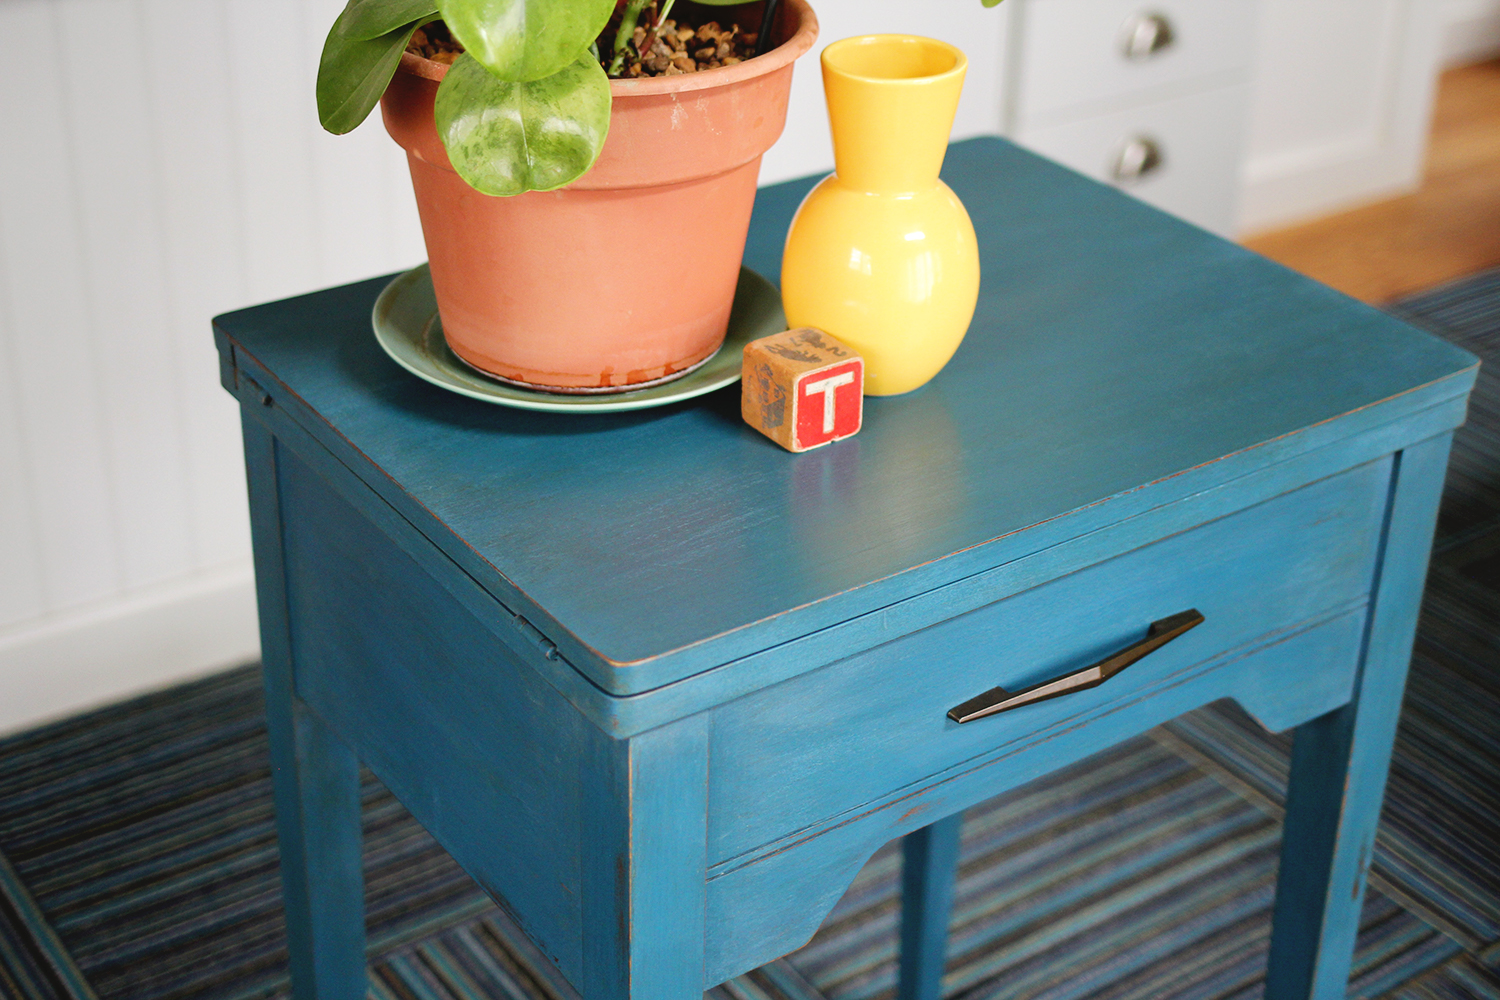 jo-torrijos-a-simpler-design-atlanta-painted-furniture-annie-sloan-chalk-paint-blue-table-2.jpg